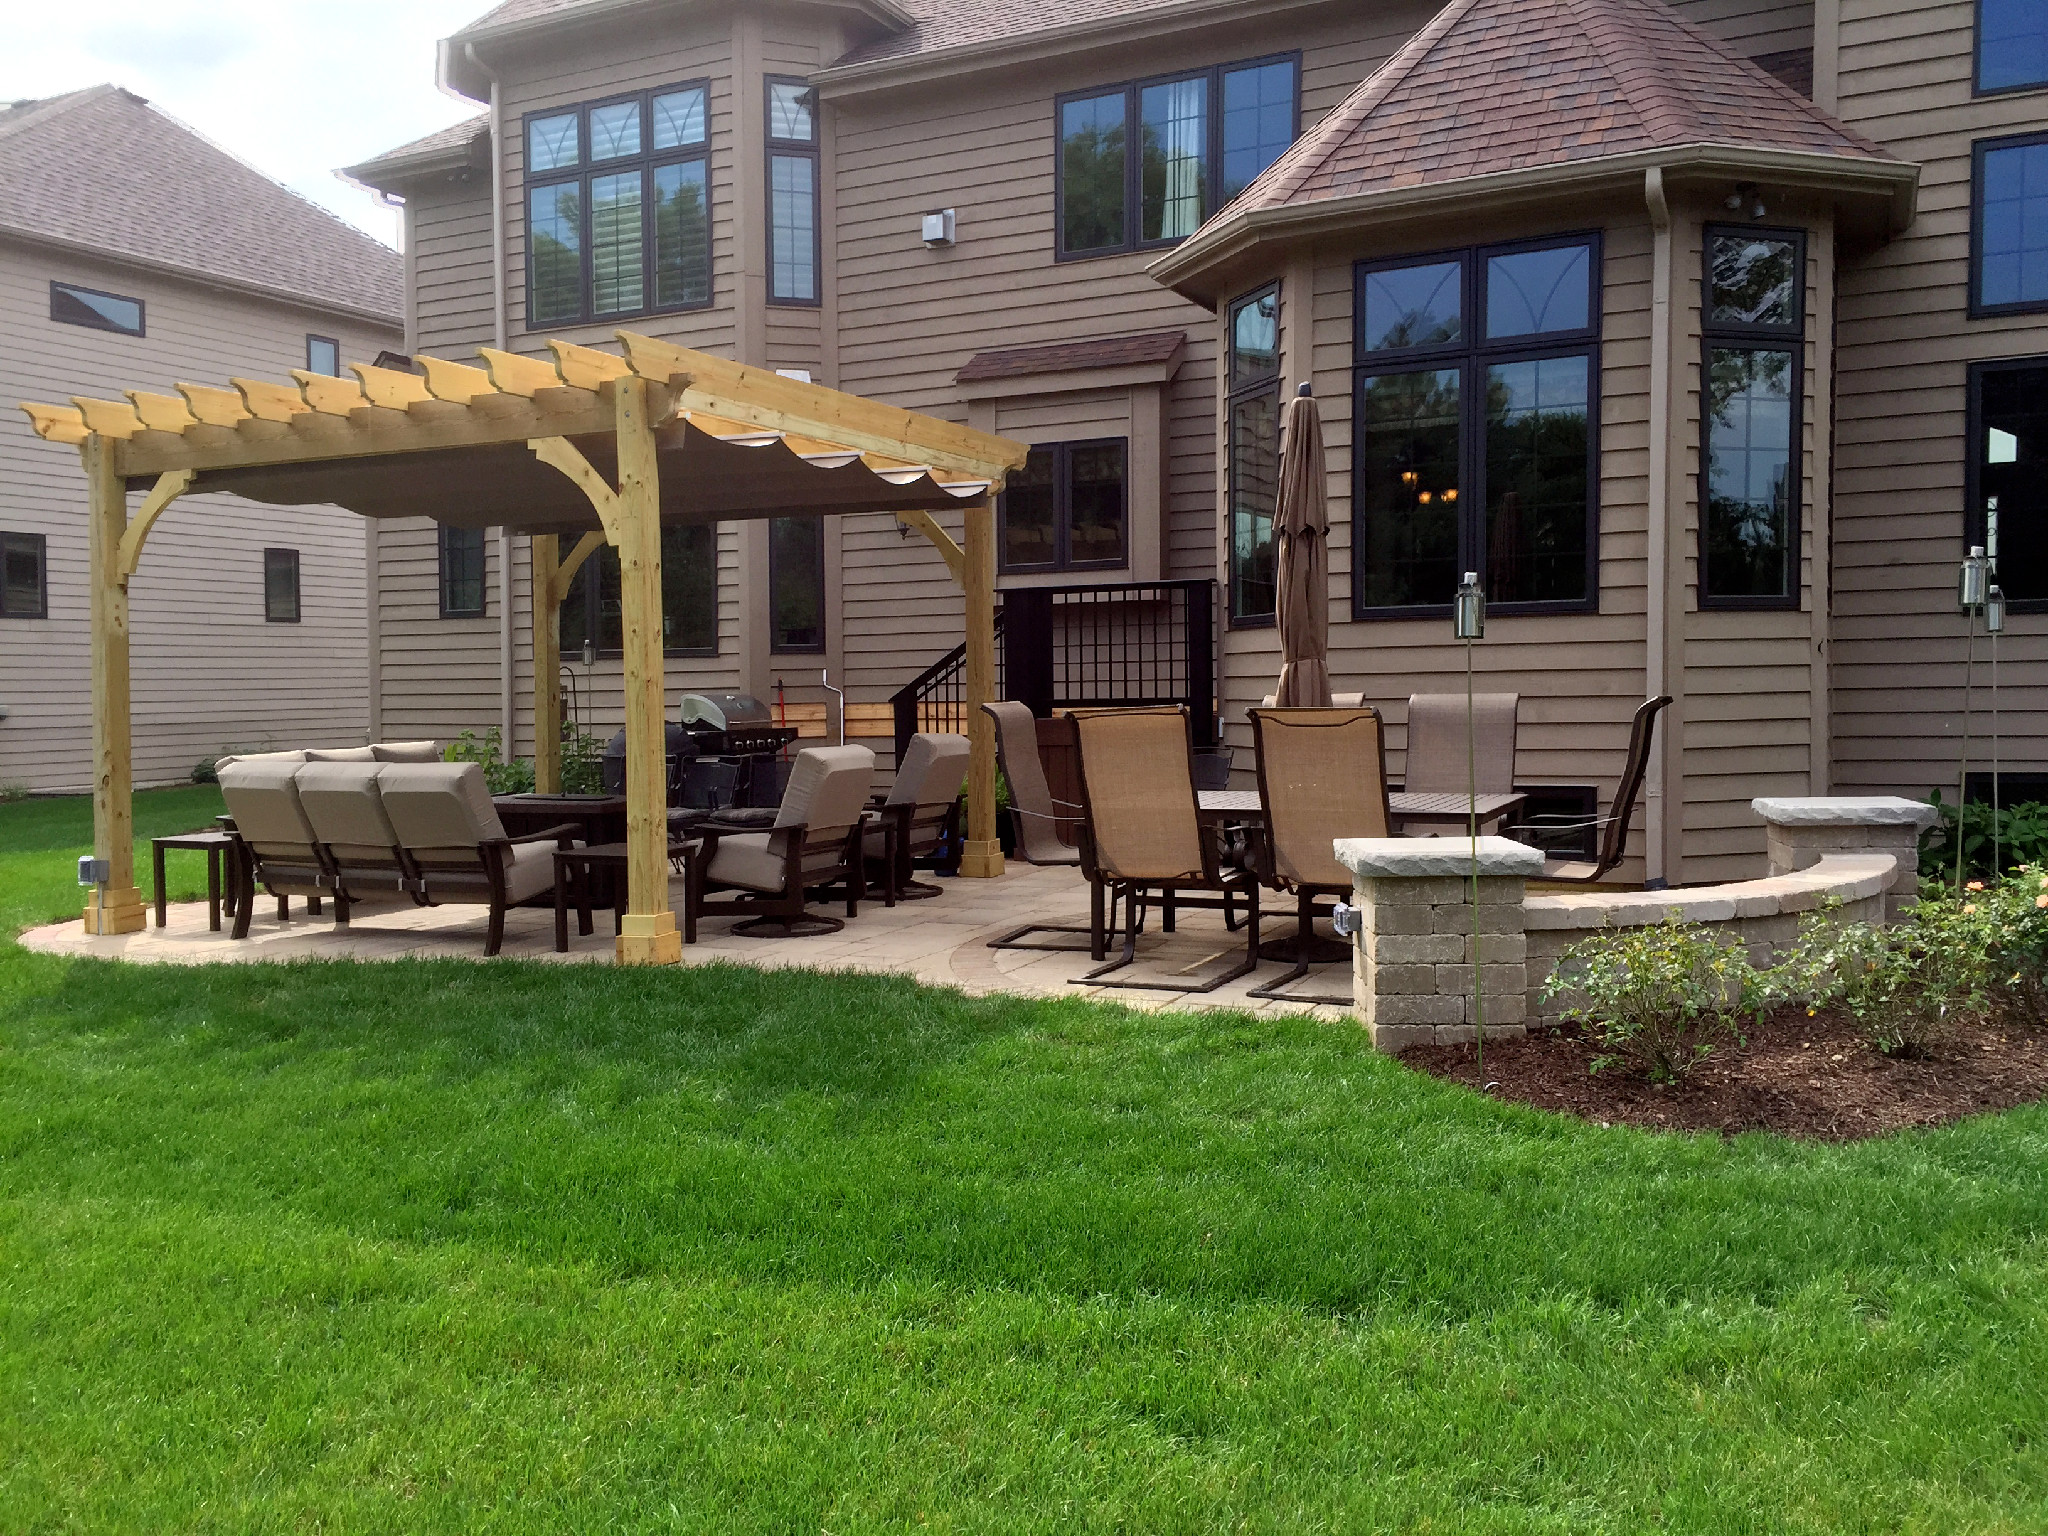 Backyard Solutions pergola shade solutions for your chicagoland backyard | archadeck